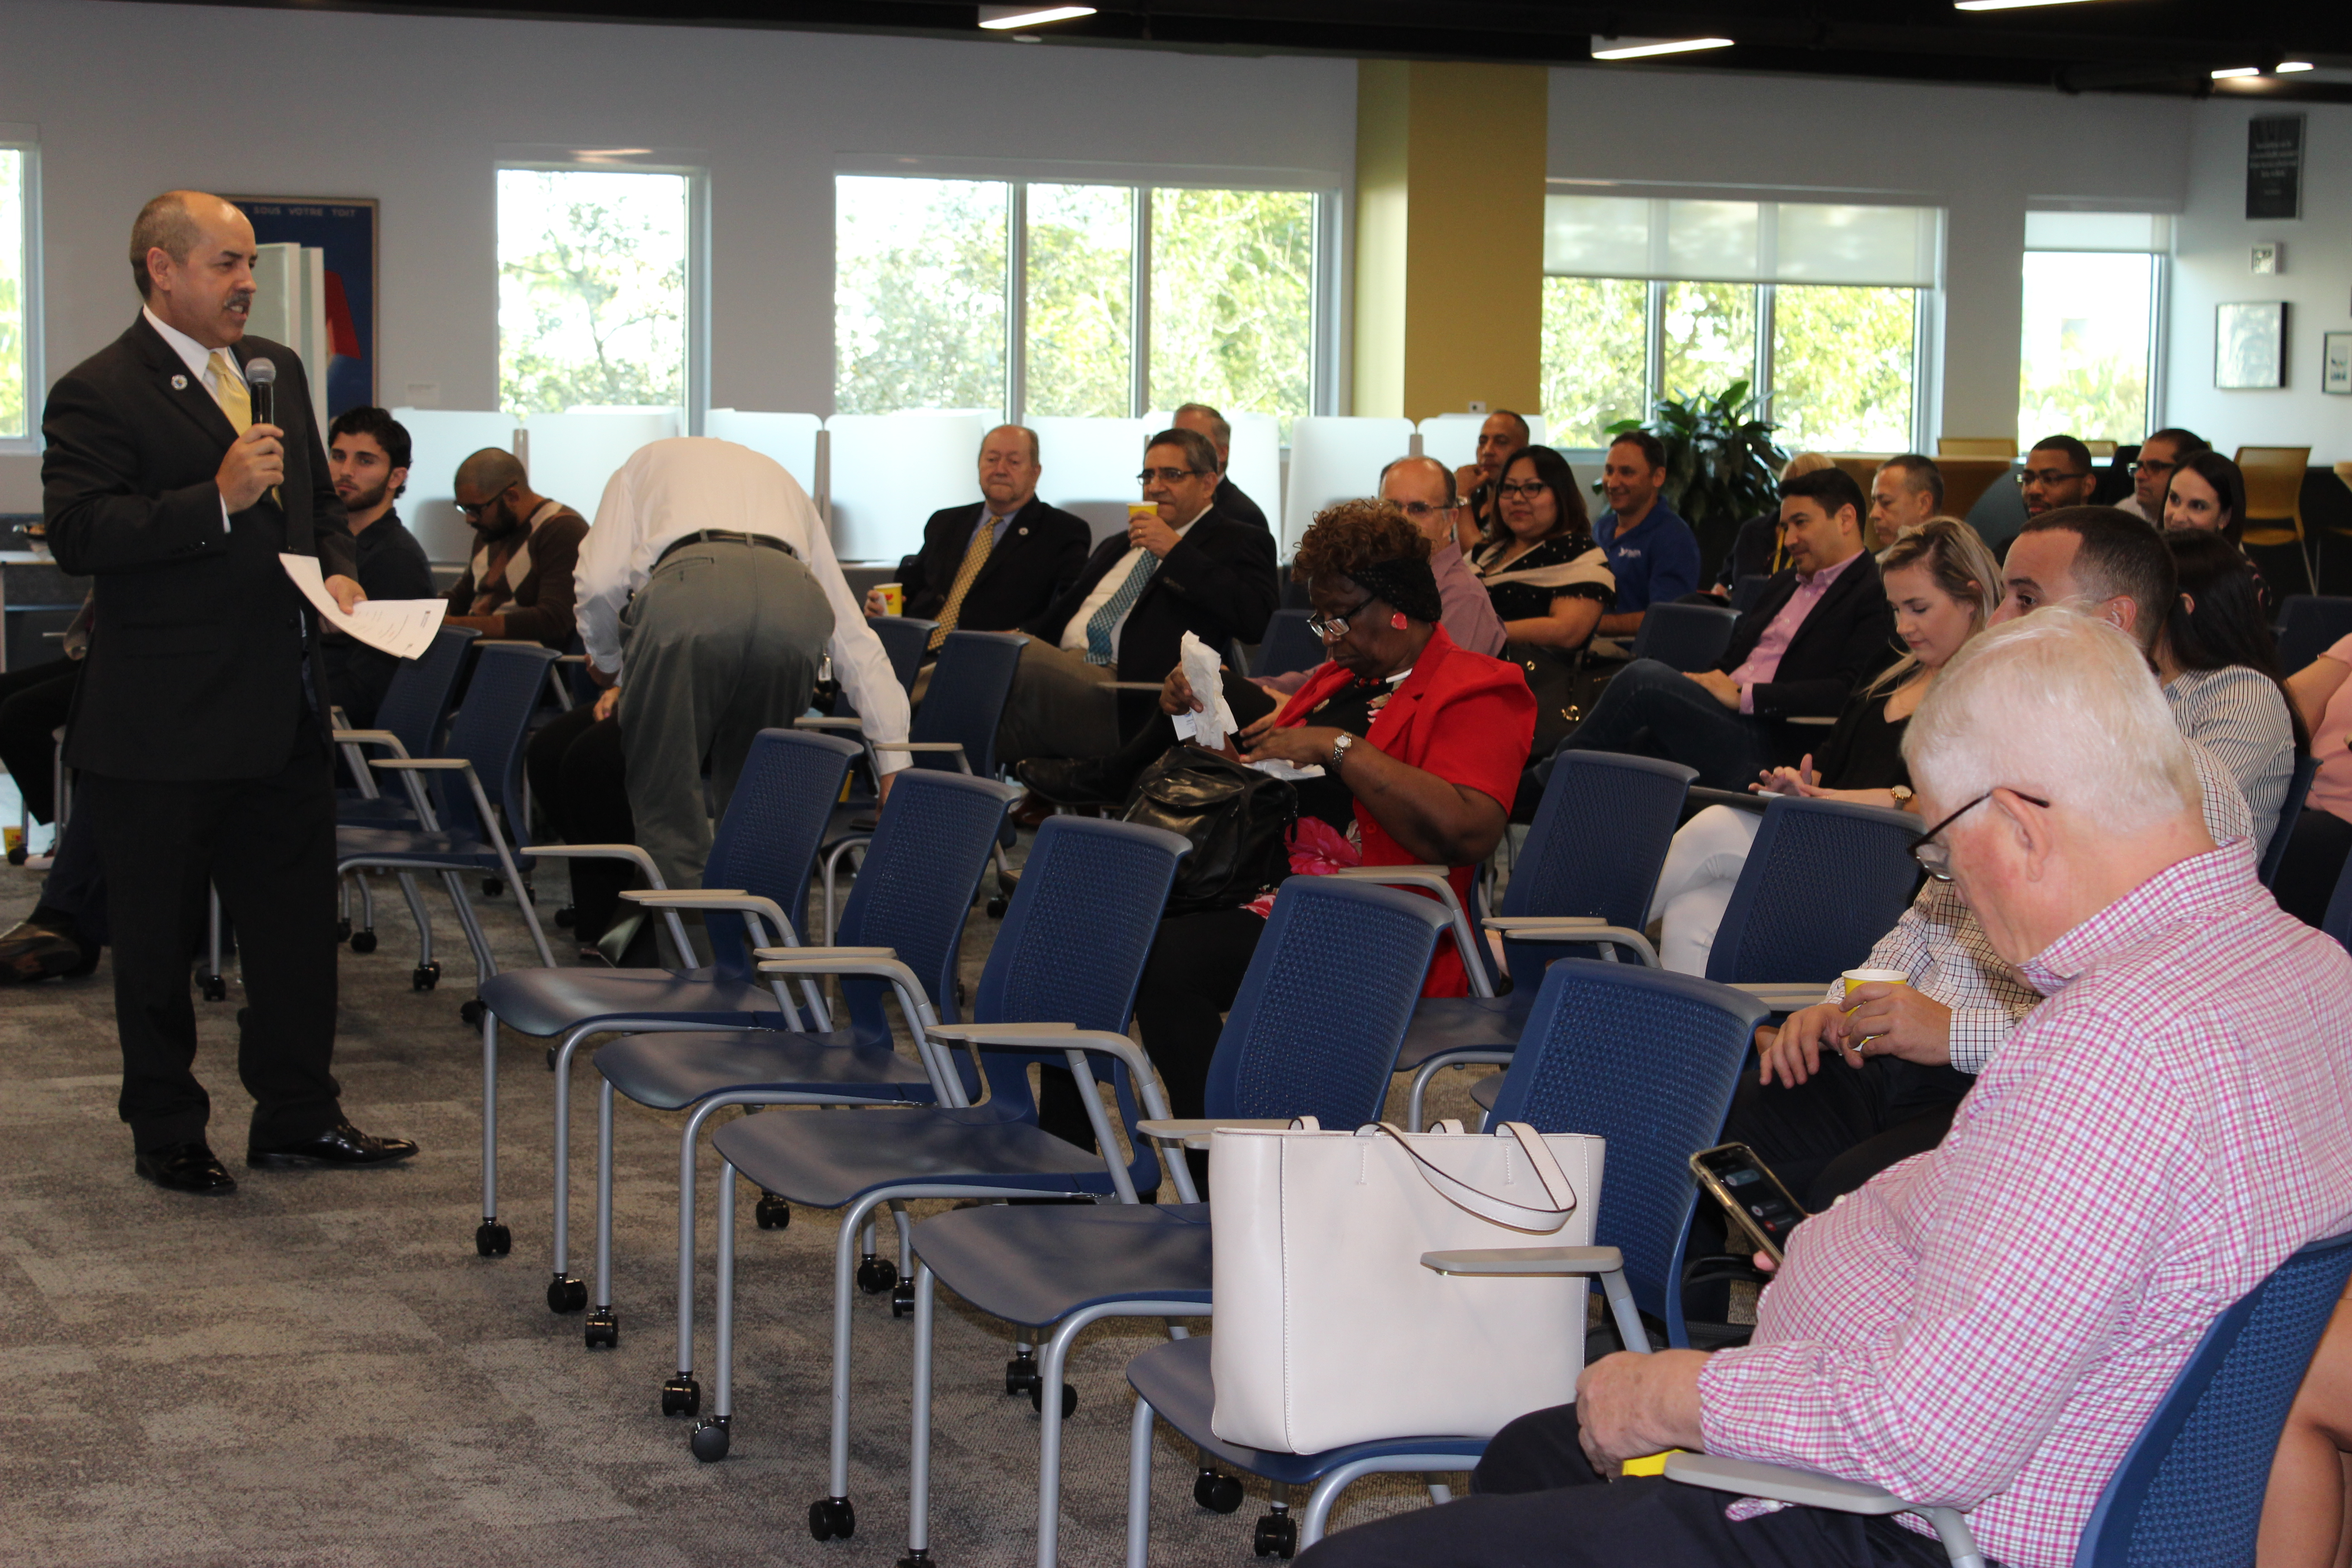 Doral Chamber of Commerce introduces DCC 21st Century Technology event, members settling and learning more from Manny Sarmiento.